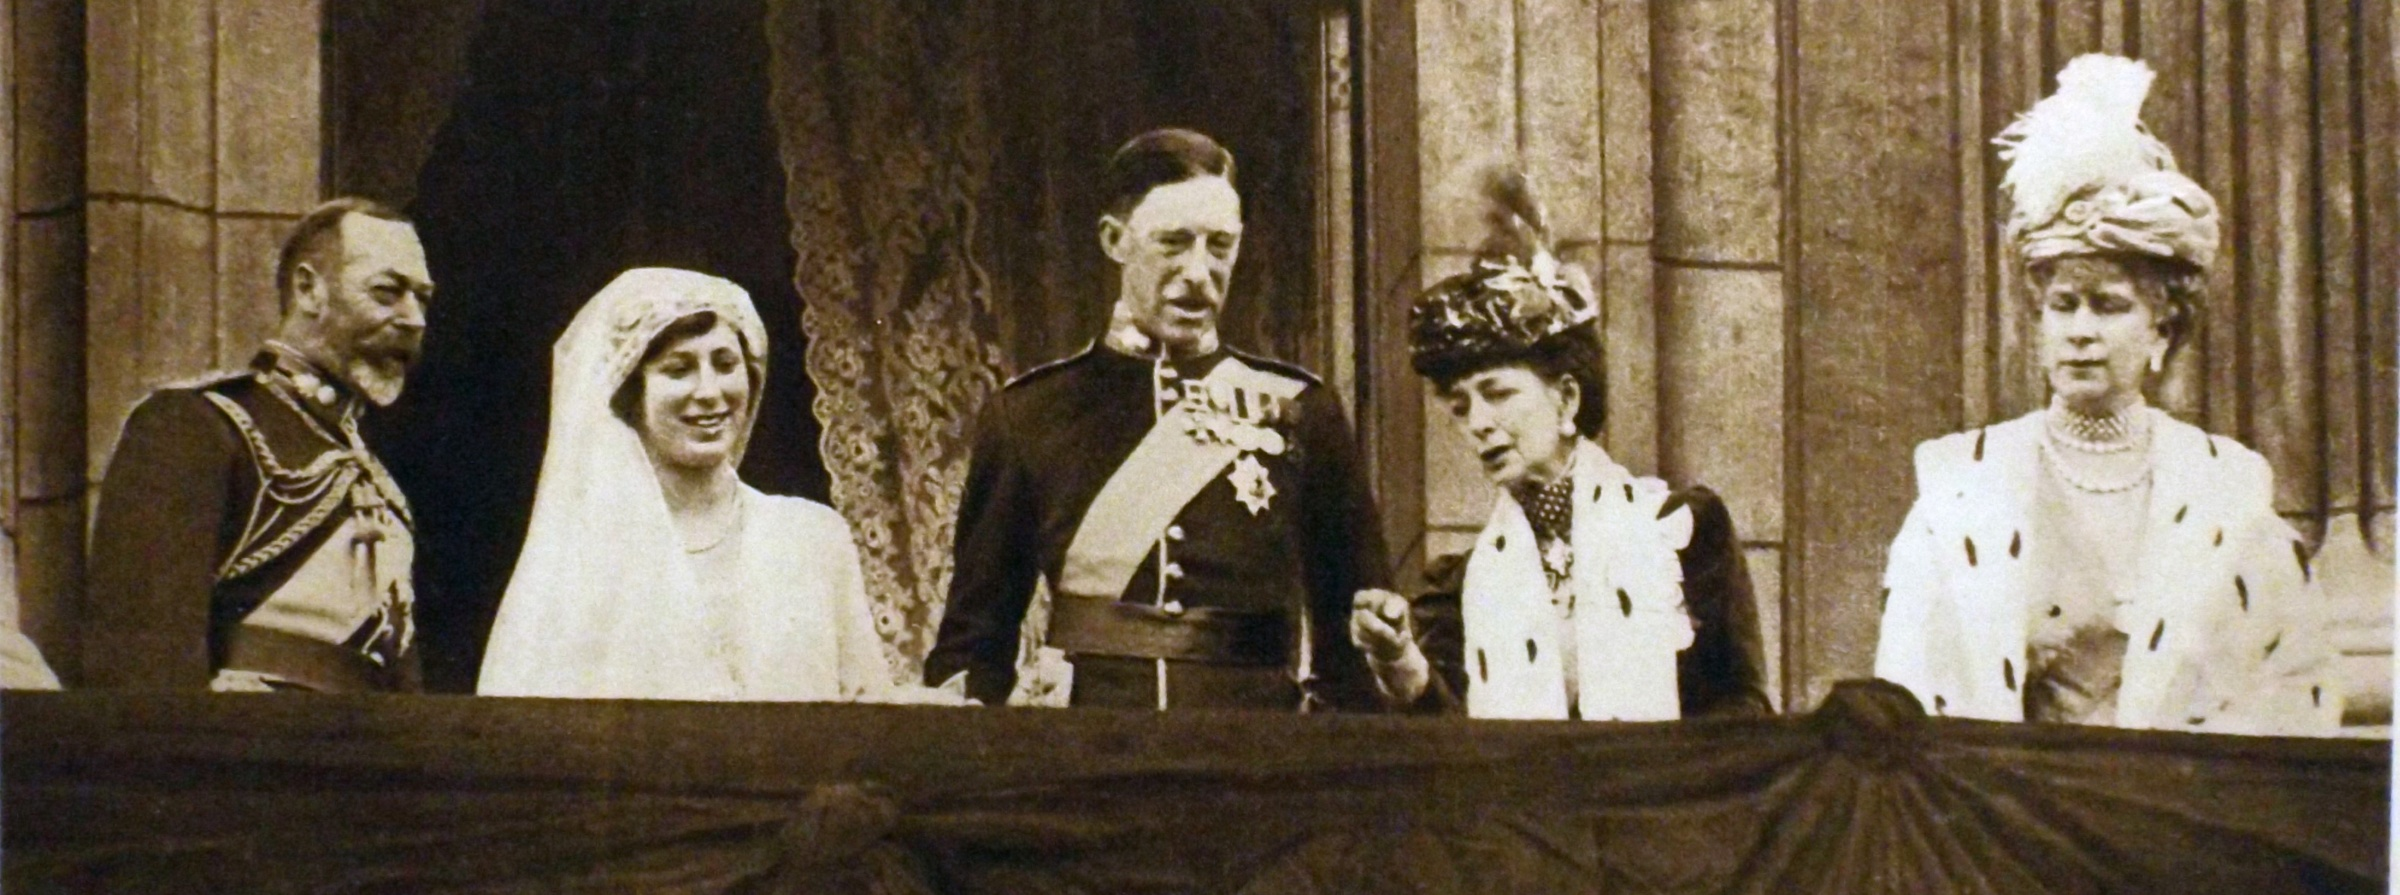 Princess20Mary20and20her20new20husband20Viscount20Lascelles2C20Buckingham20Palace20balcony2C201922-59638d4